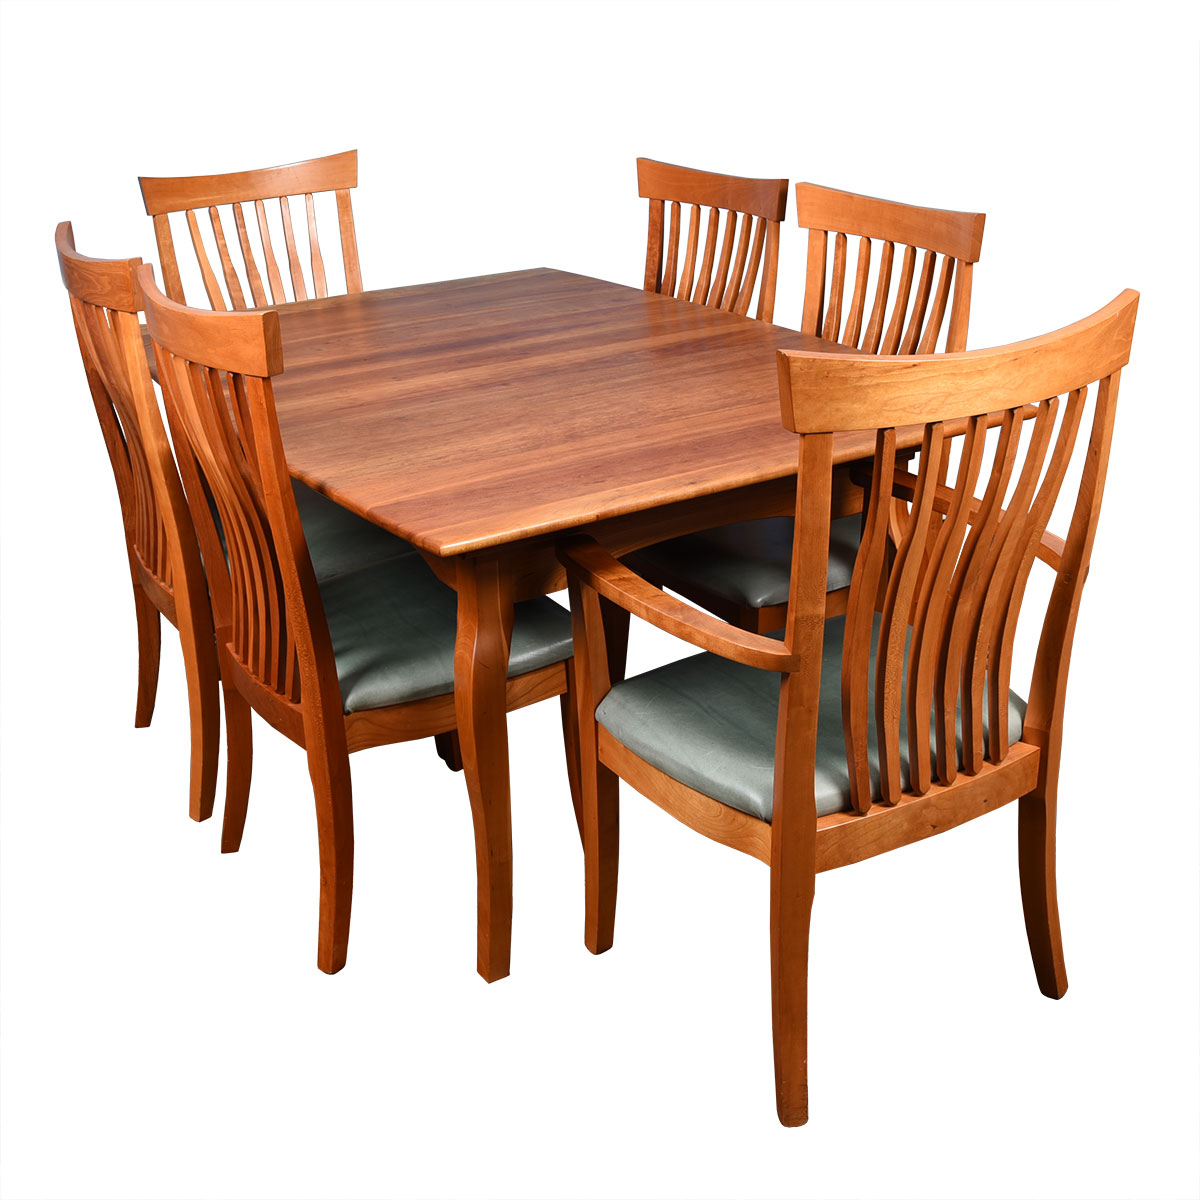 Solid Cherry Set of 6 Leather (2 Arm + 4 Side) Chairs + Expanding Dining Table